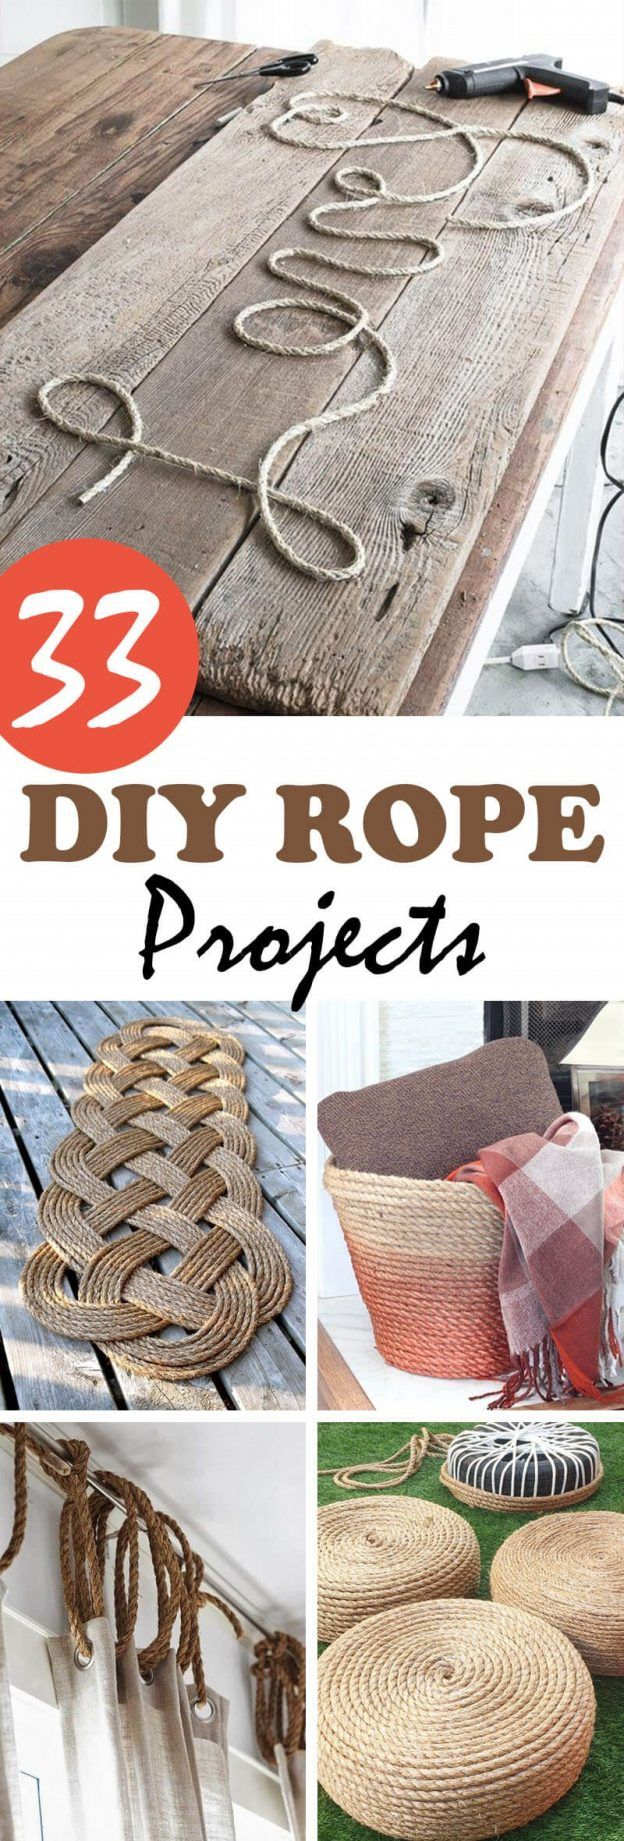 Do It Yourself Home Design: 33 Crafty And Creative DIY Rope Projects That You'll